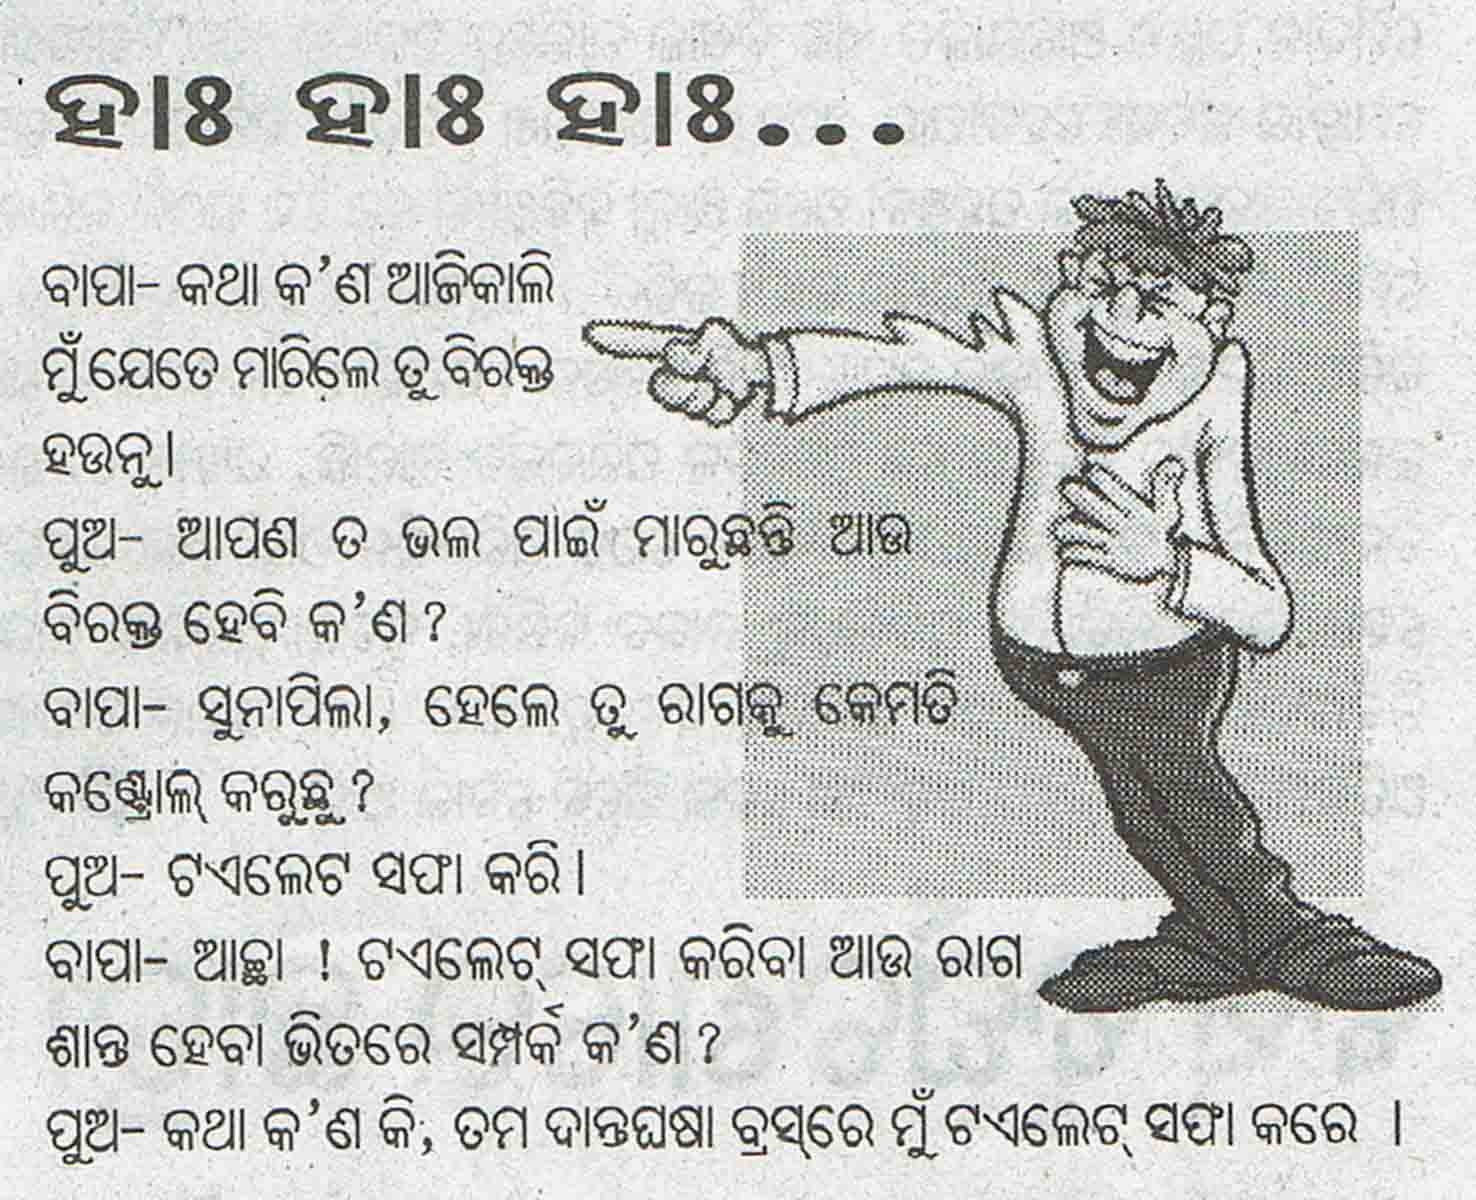 Latest Sex Story In Odia